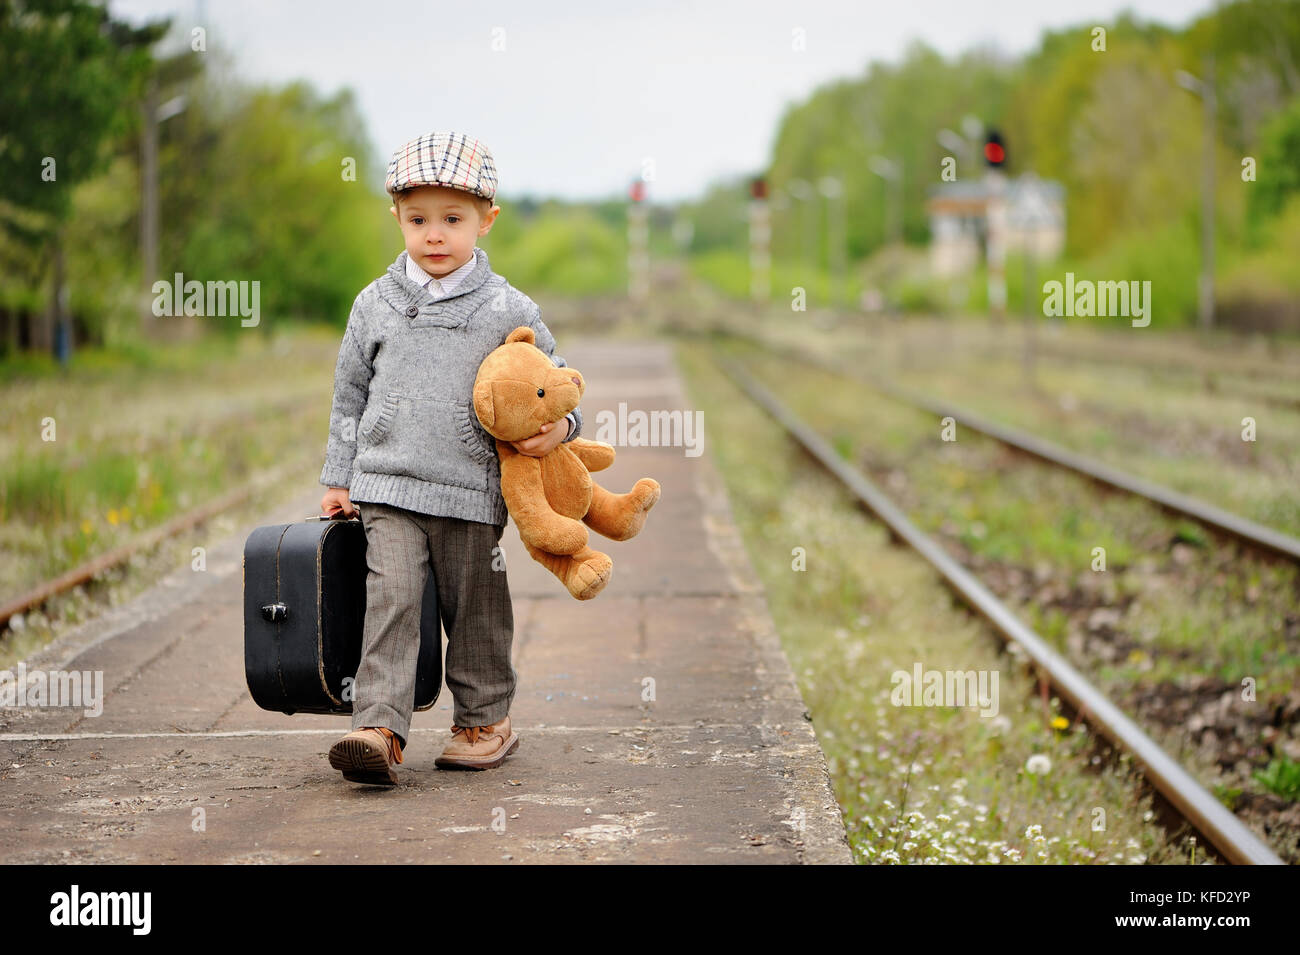 Little boy goes with a suitcase and a teddy bear at the train station - Stock Image